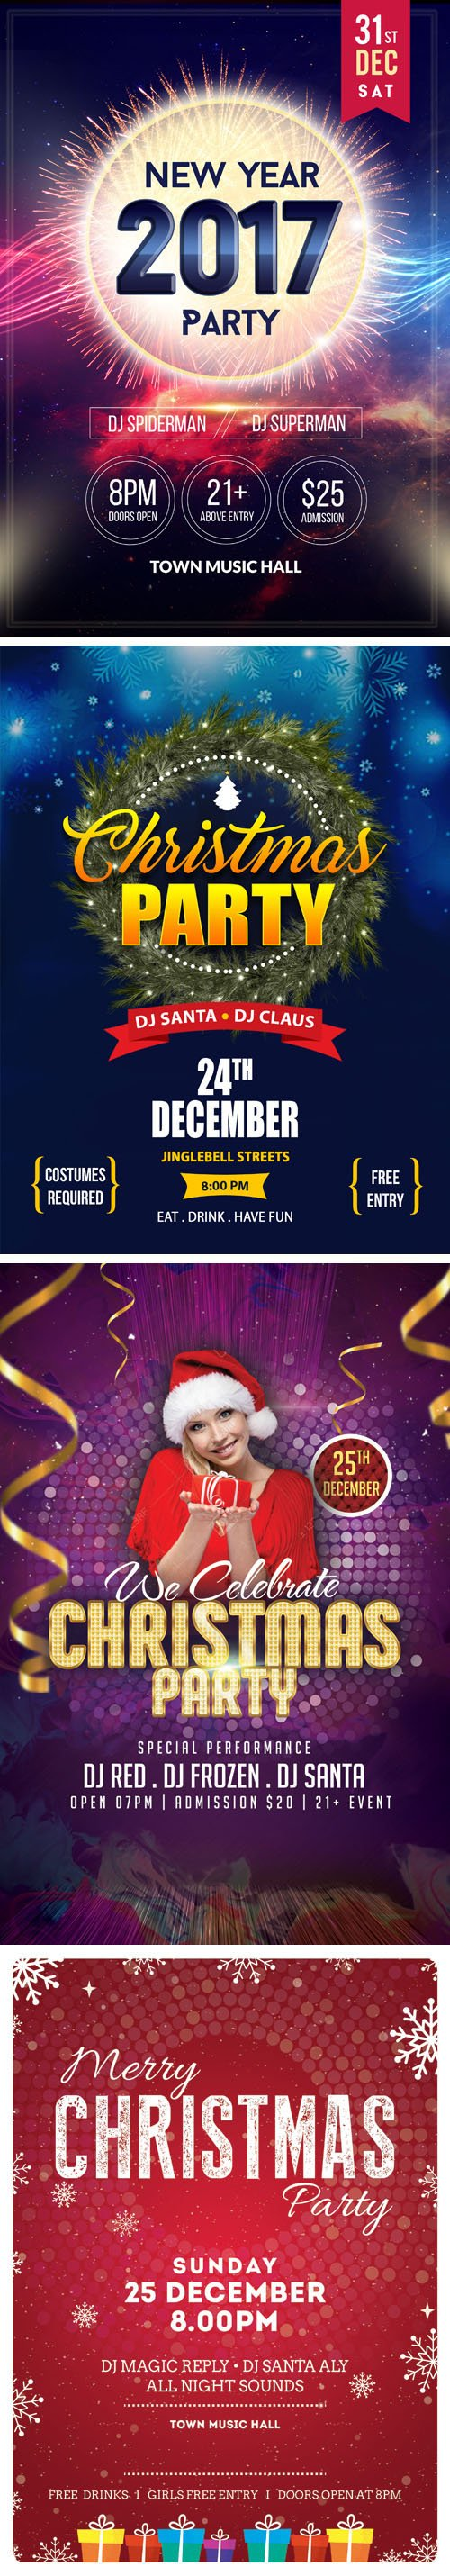 christmas new year party flyer templates psd nitrogfx 4 christmas new year 2017 party flyer templates psd